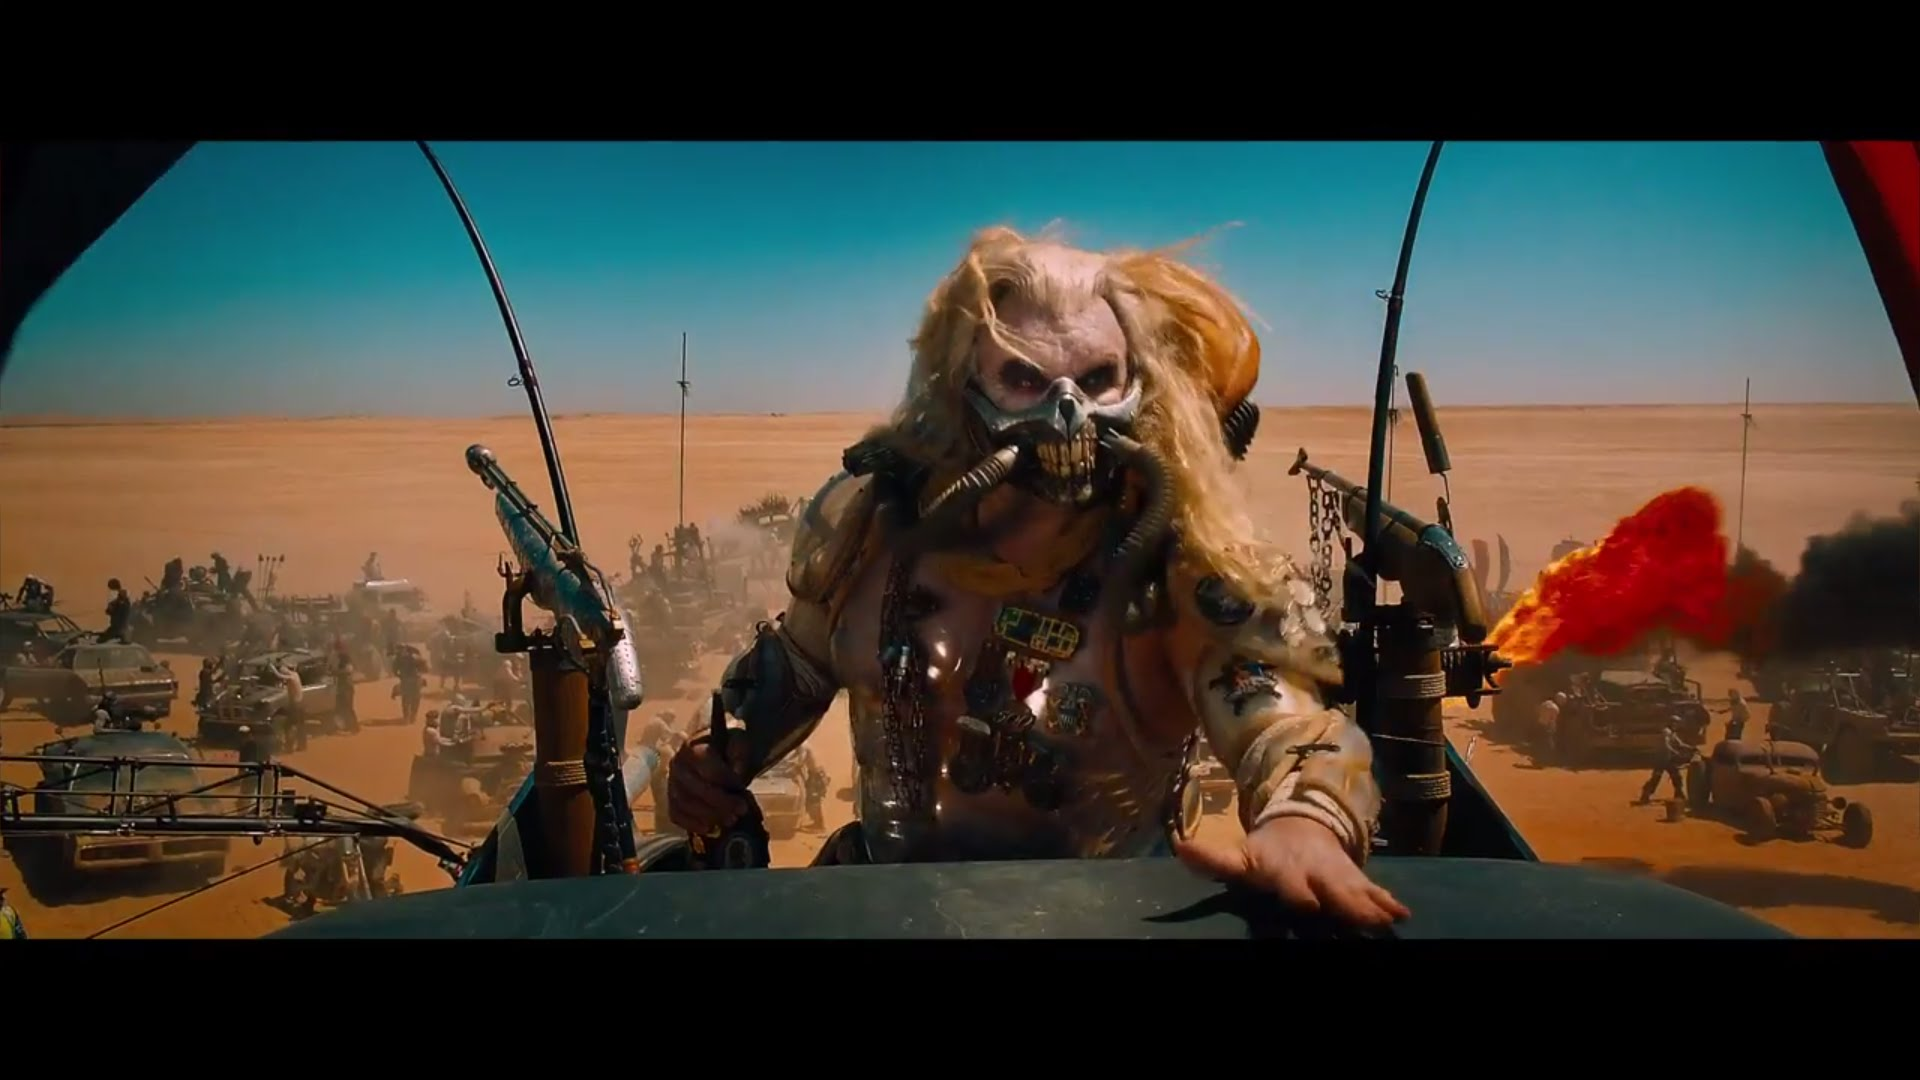 Immortan Joe in MAD MAX: FURY ROAD